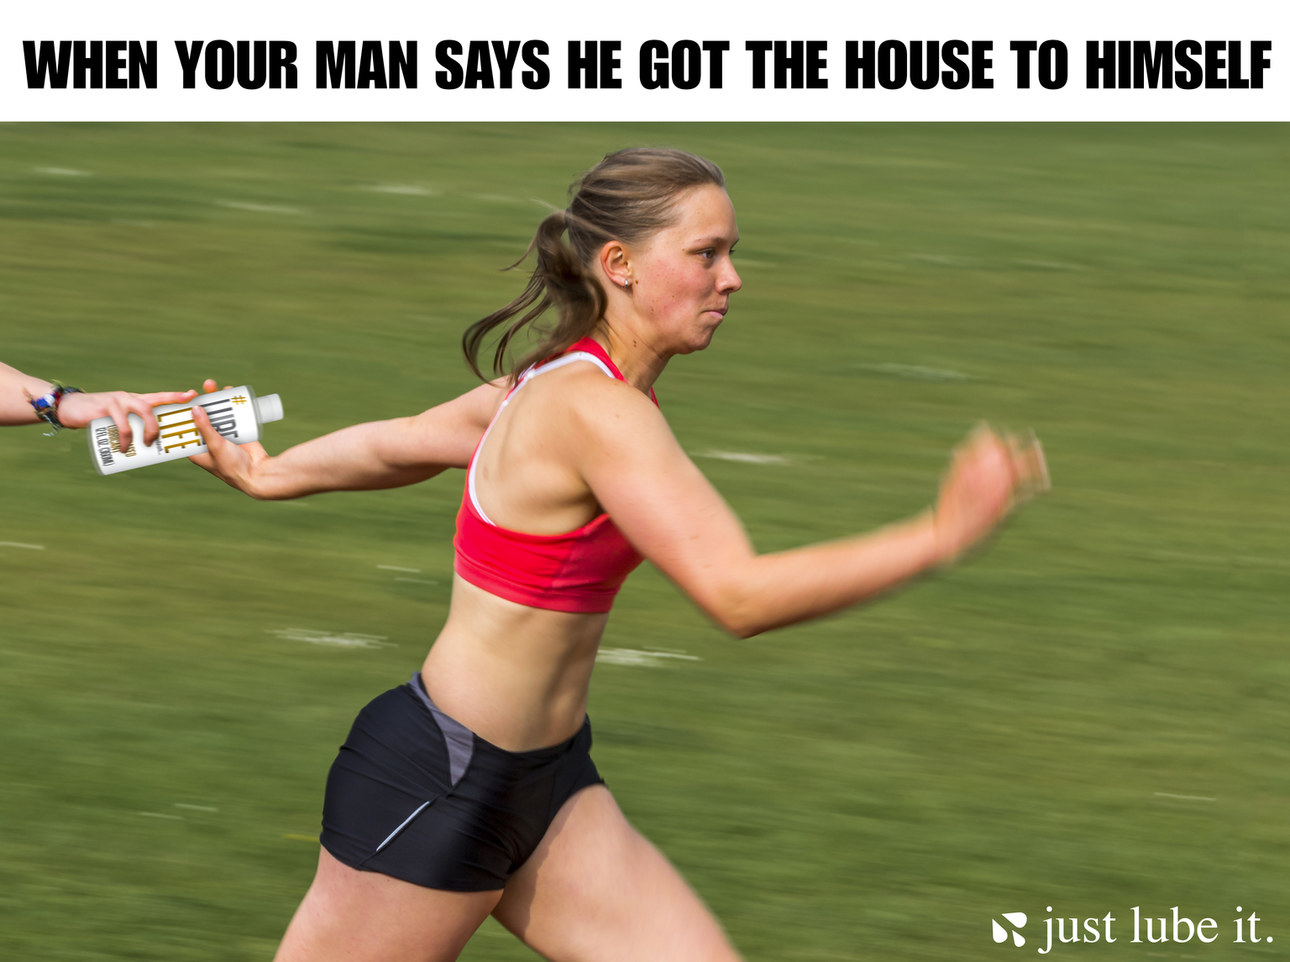 when your man says he got the house to himself - meme